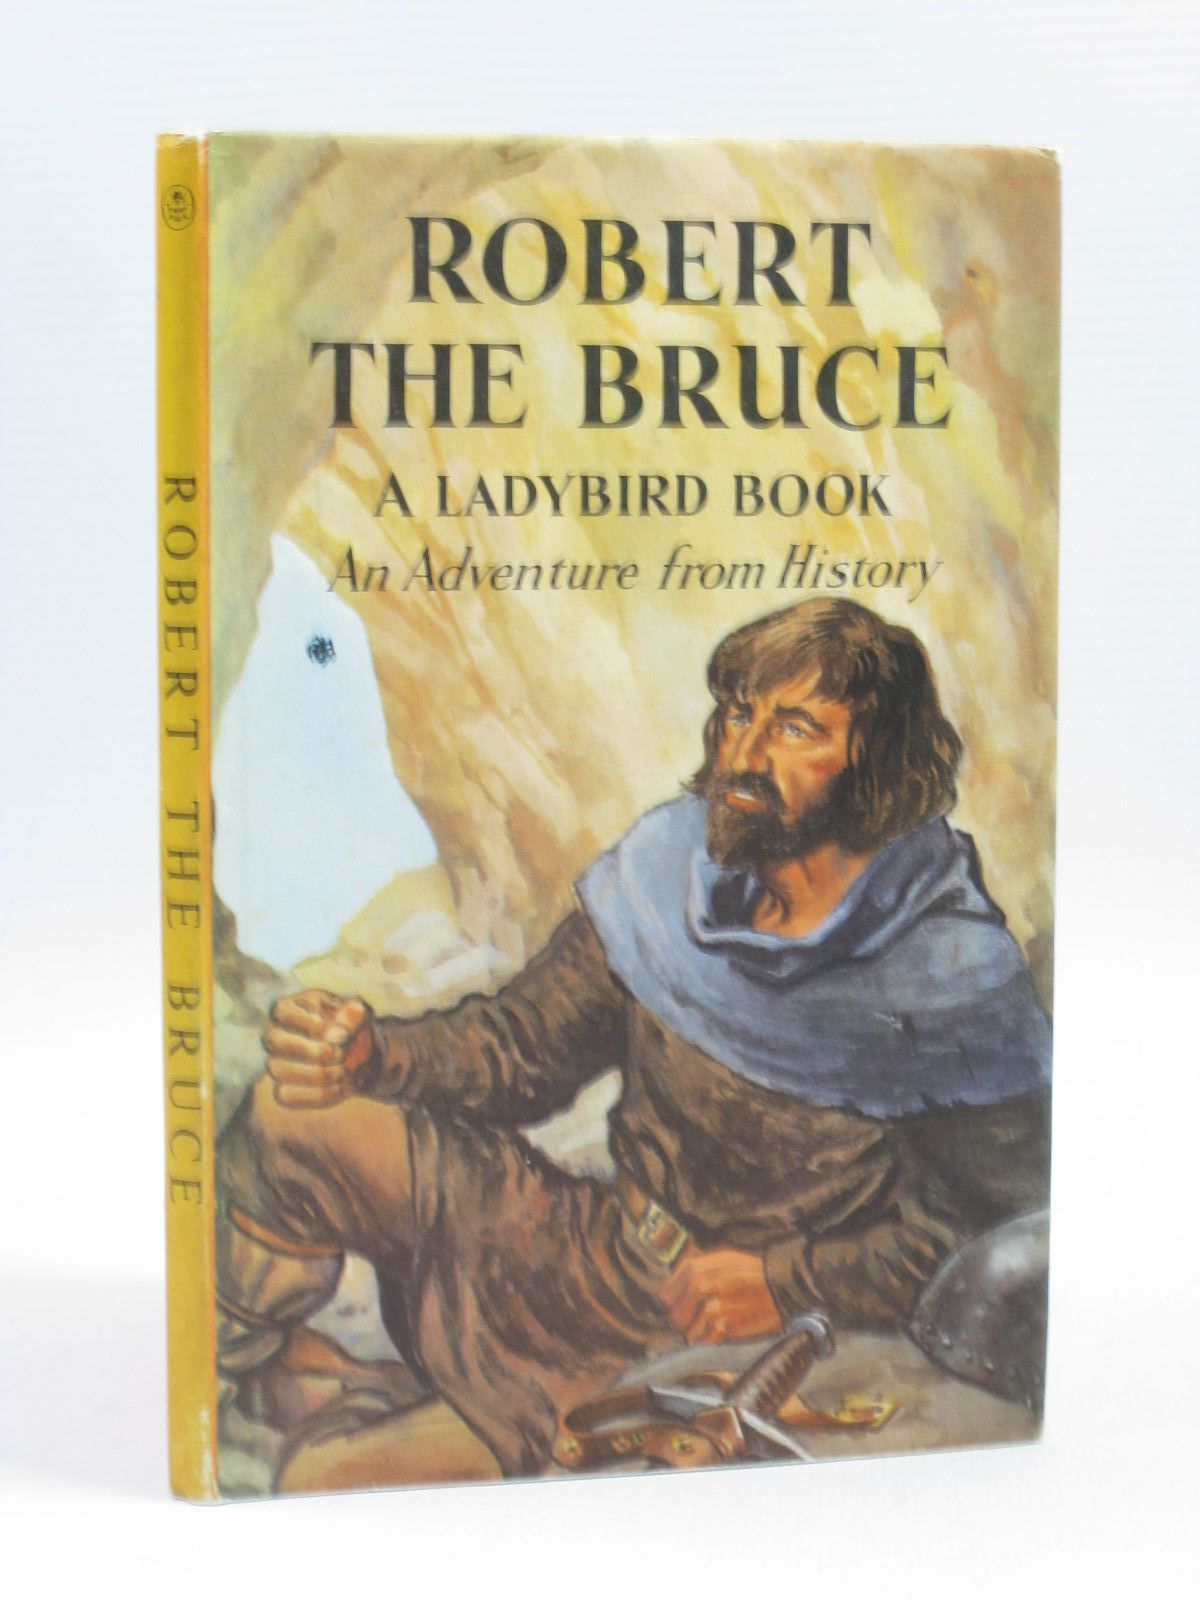 Photo of ROBERT THE BRUCE written by Peach, L. Du Garde illustrated by Kenney, John published by Wills & Hepworth Ltd. (STOCK CODE: 1403703)  for sale by Stella & Rose's Books